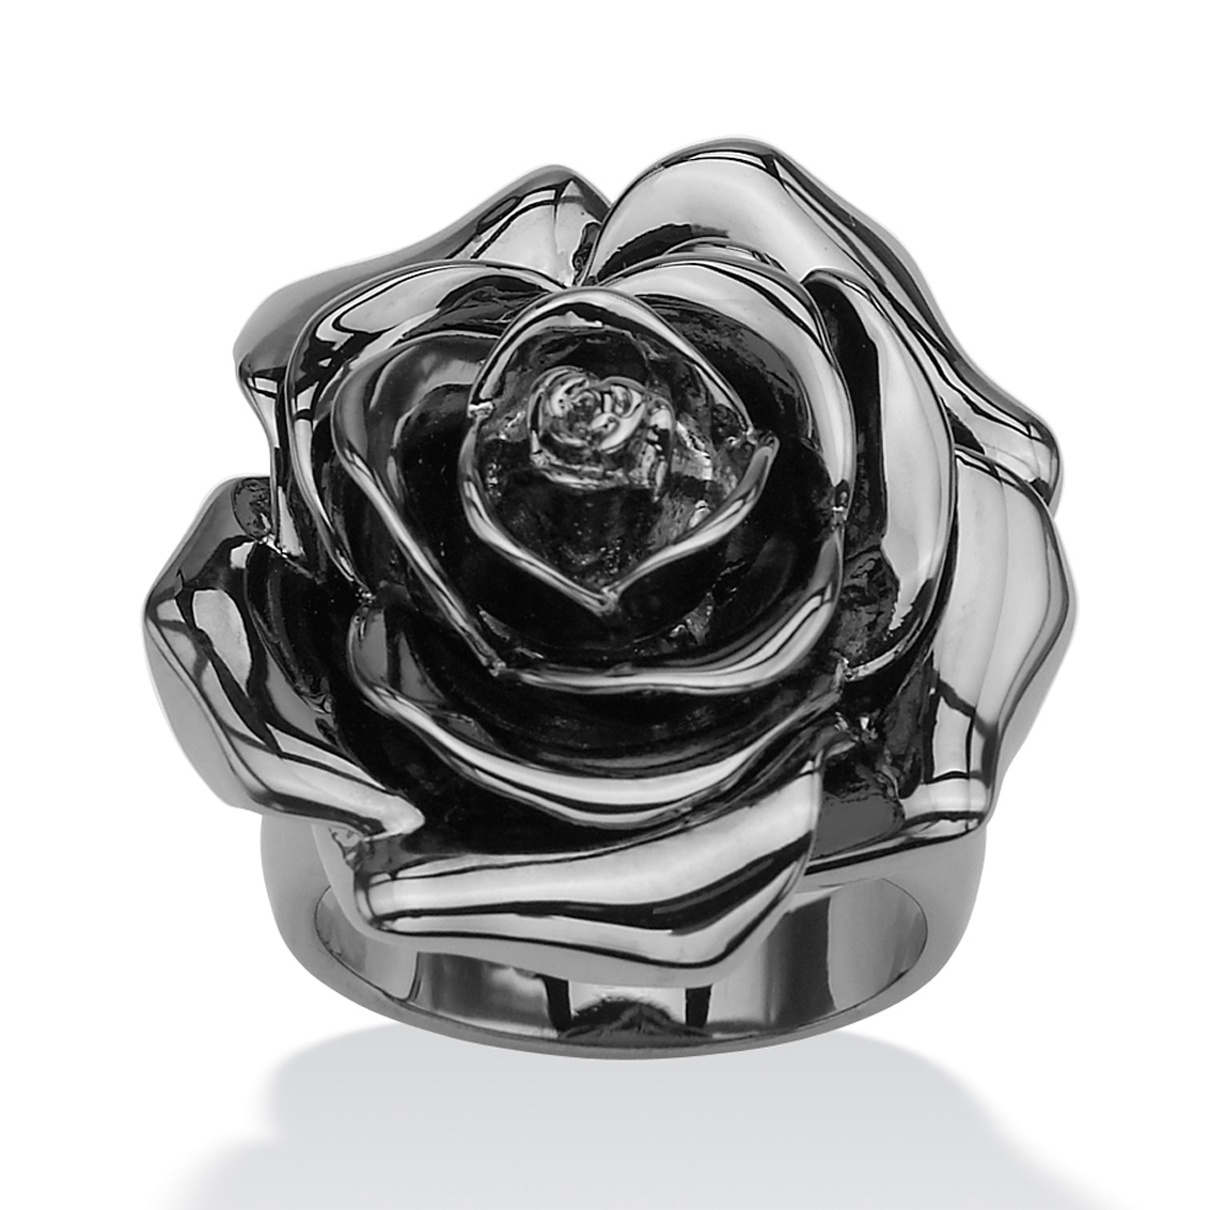 palmbeach jewelry black rhodium plated rose shaped flower